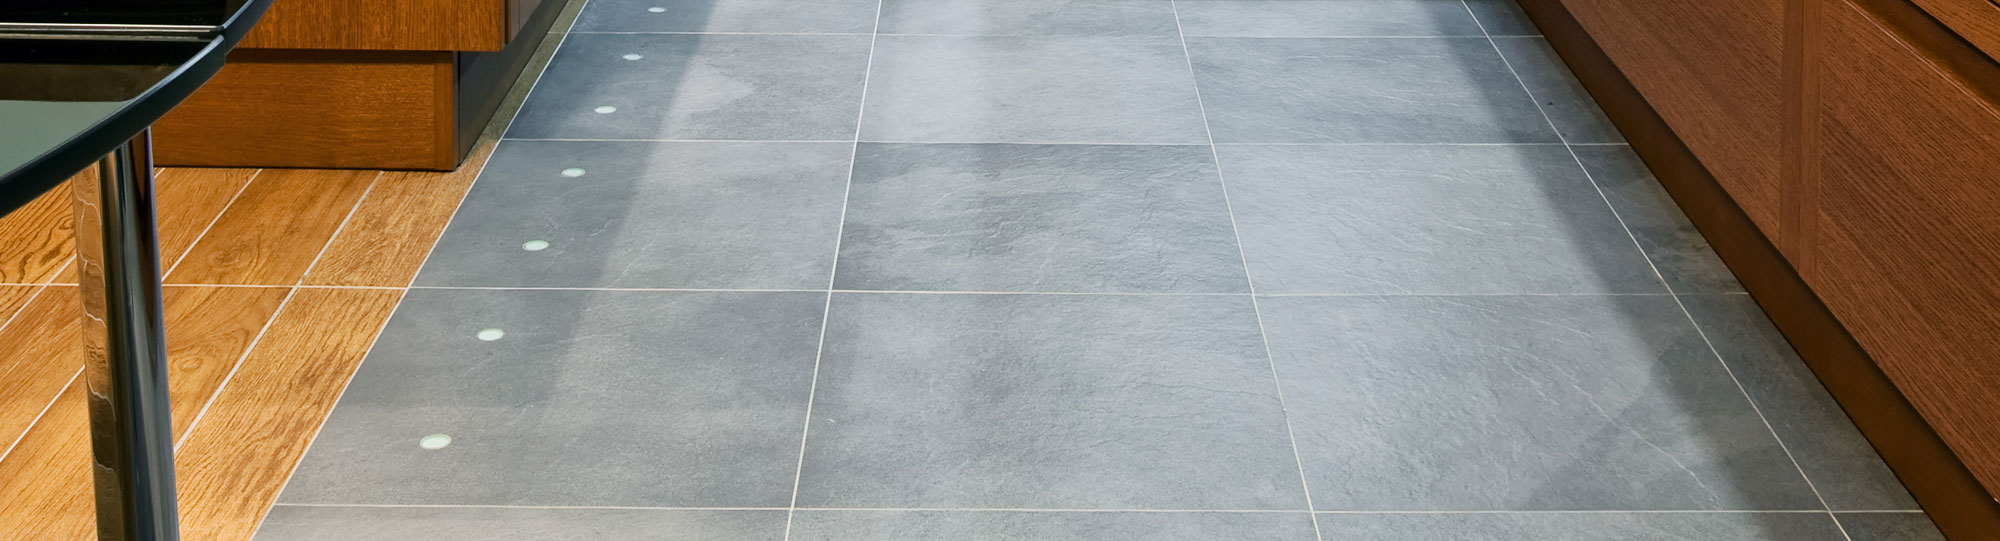 austin tile grout cleaning quick